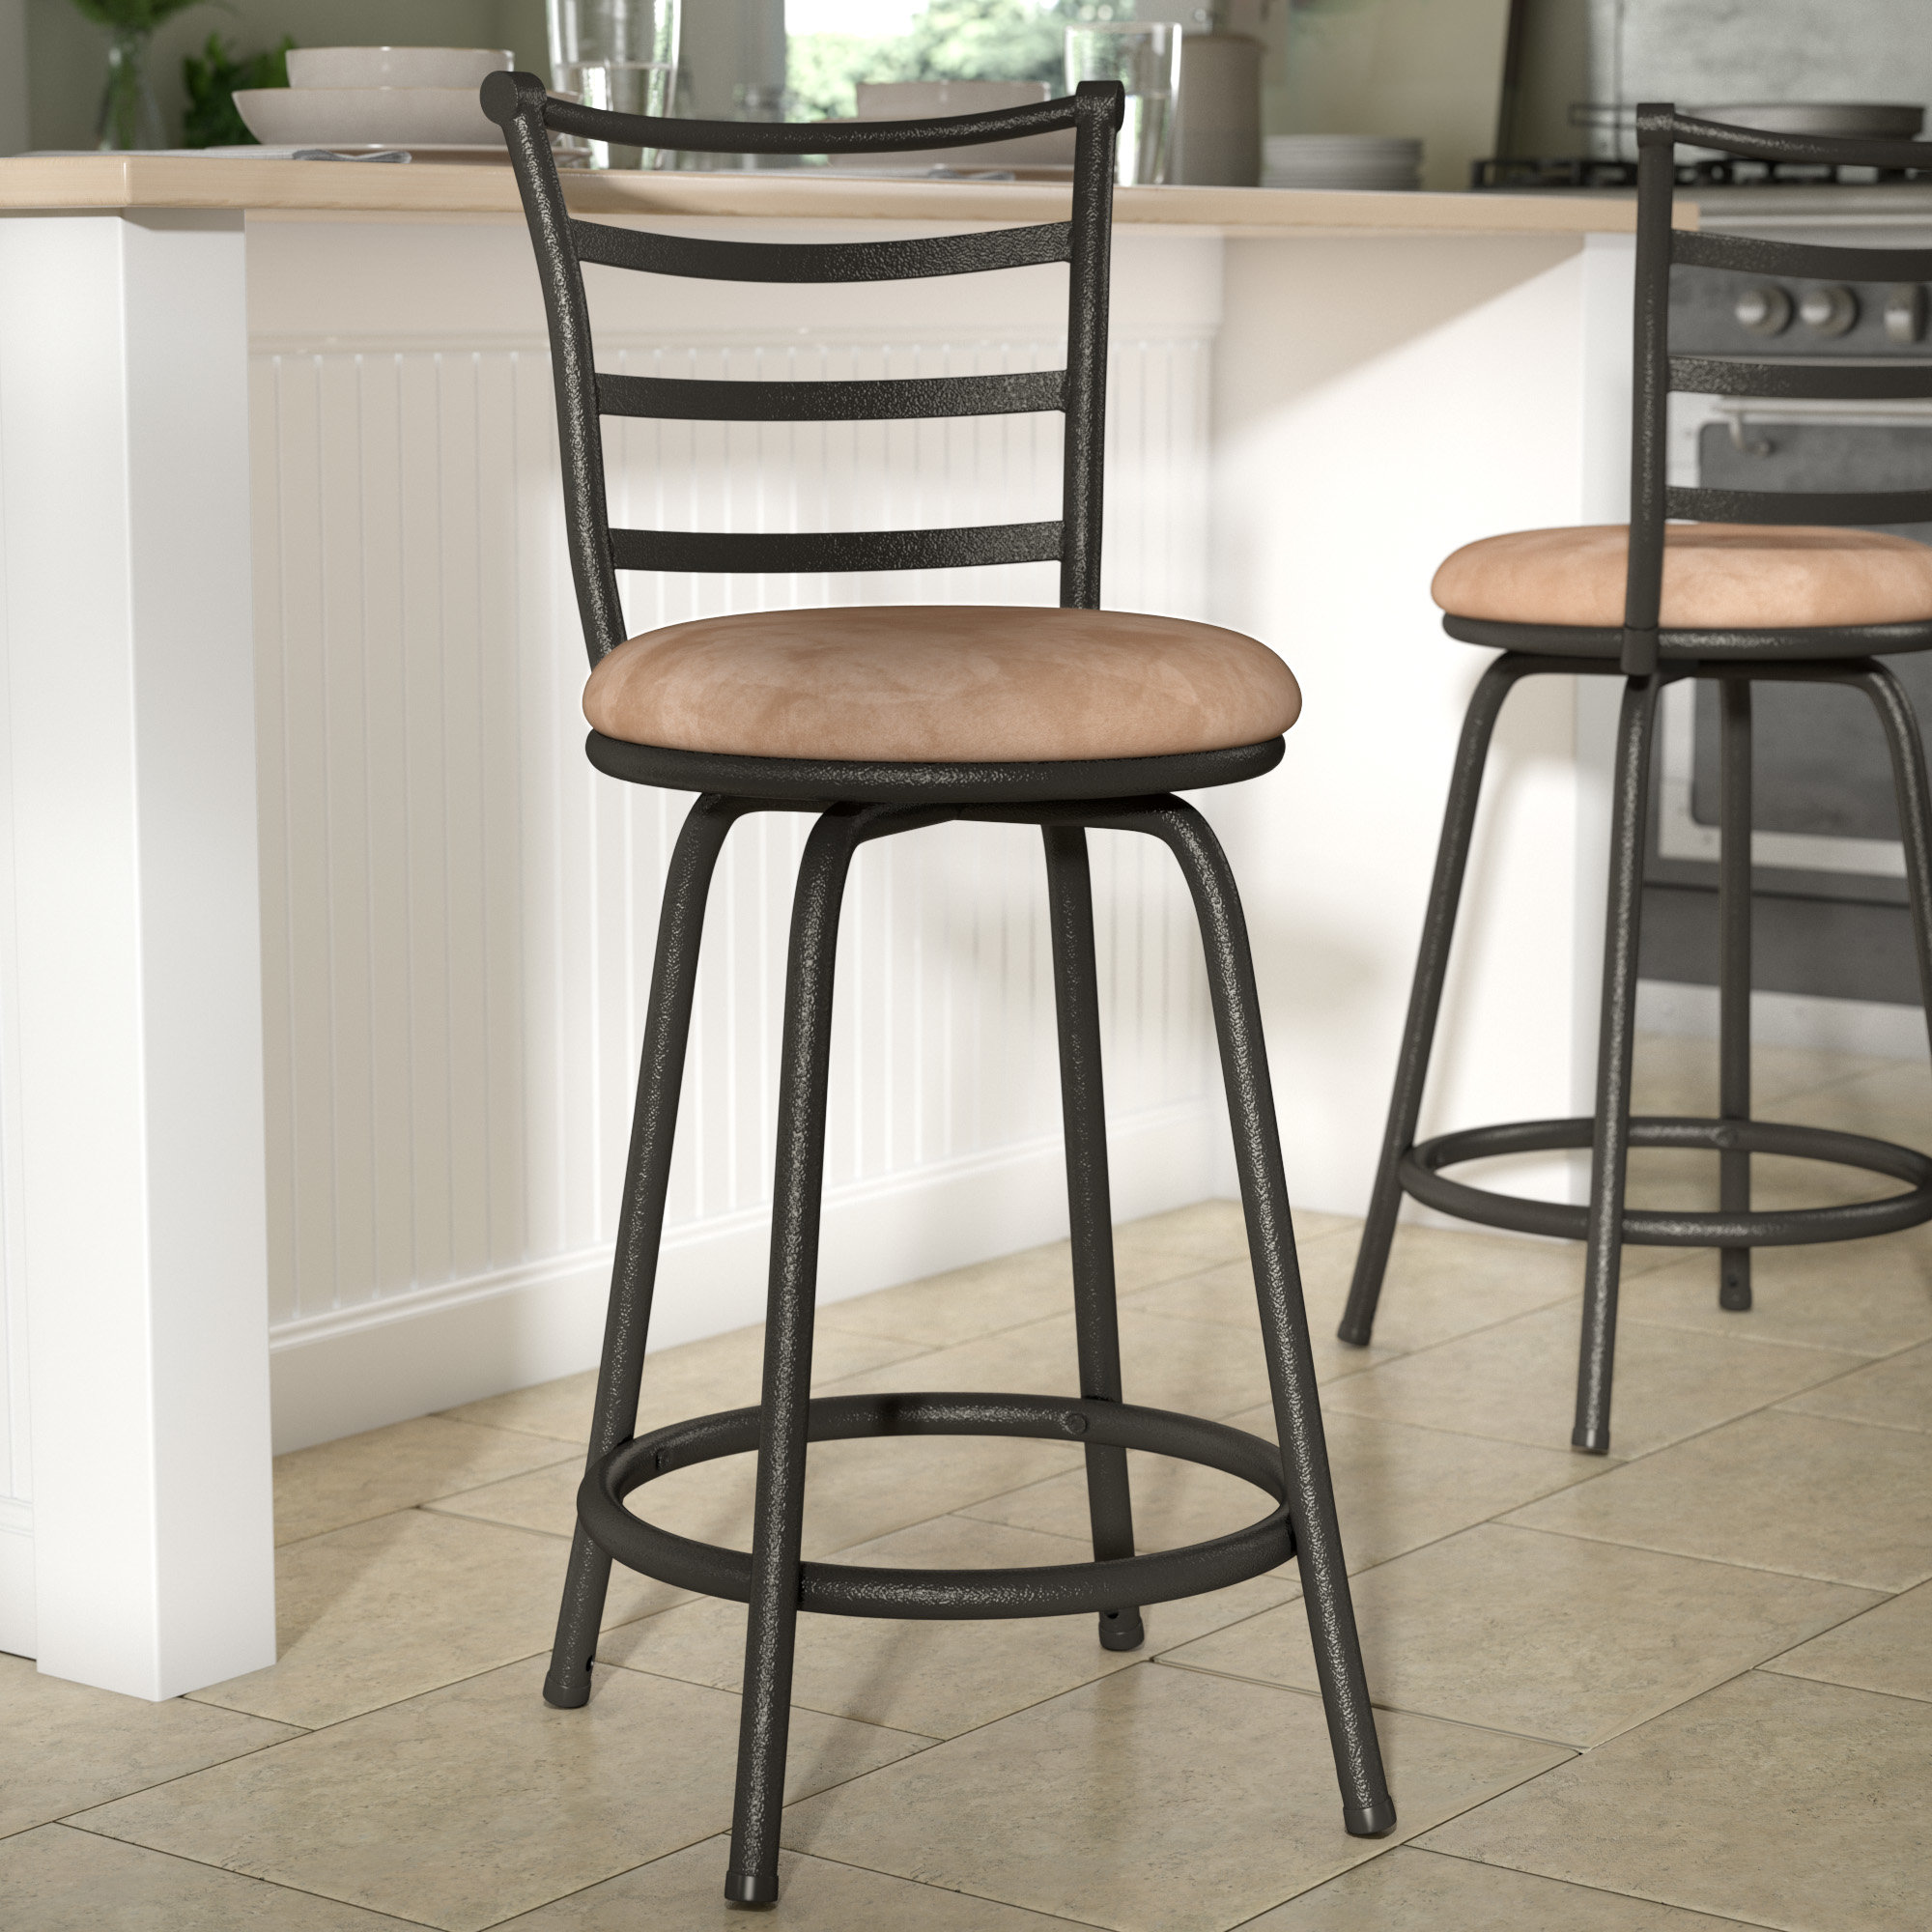 Songmics Lot De 2 Tabourets De Bar Stool Avis Bar Stools Comparatif Tests Le Meilleur Produit 2019